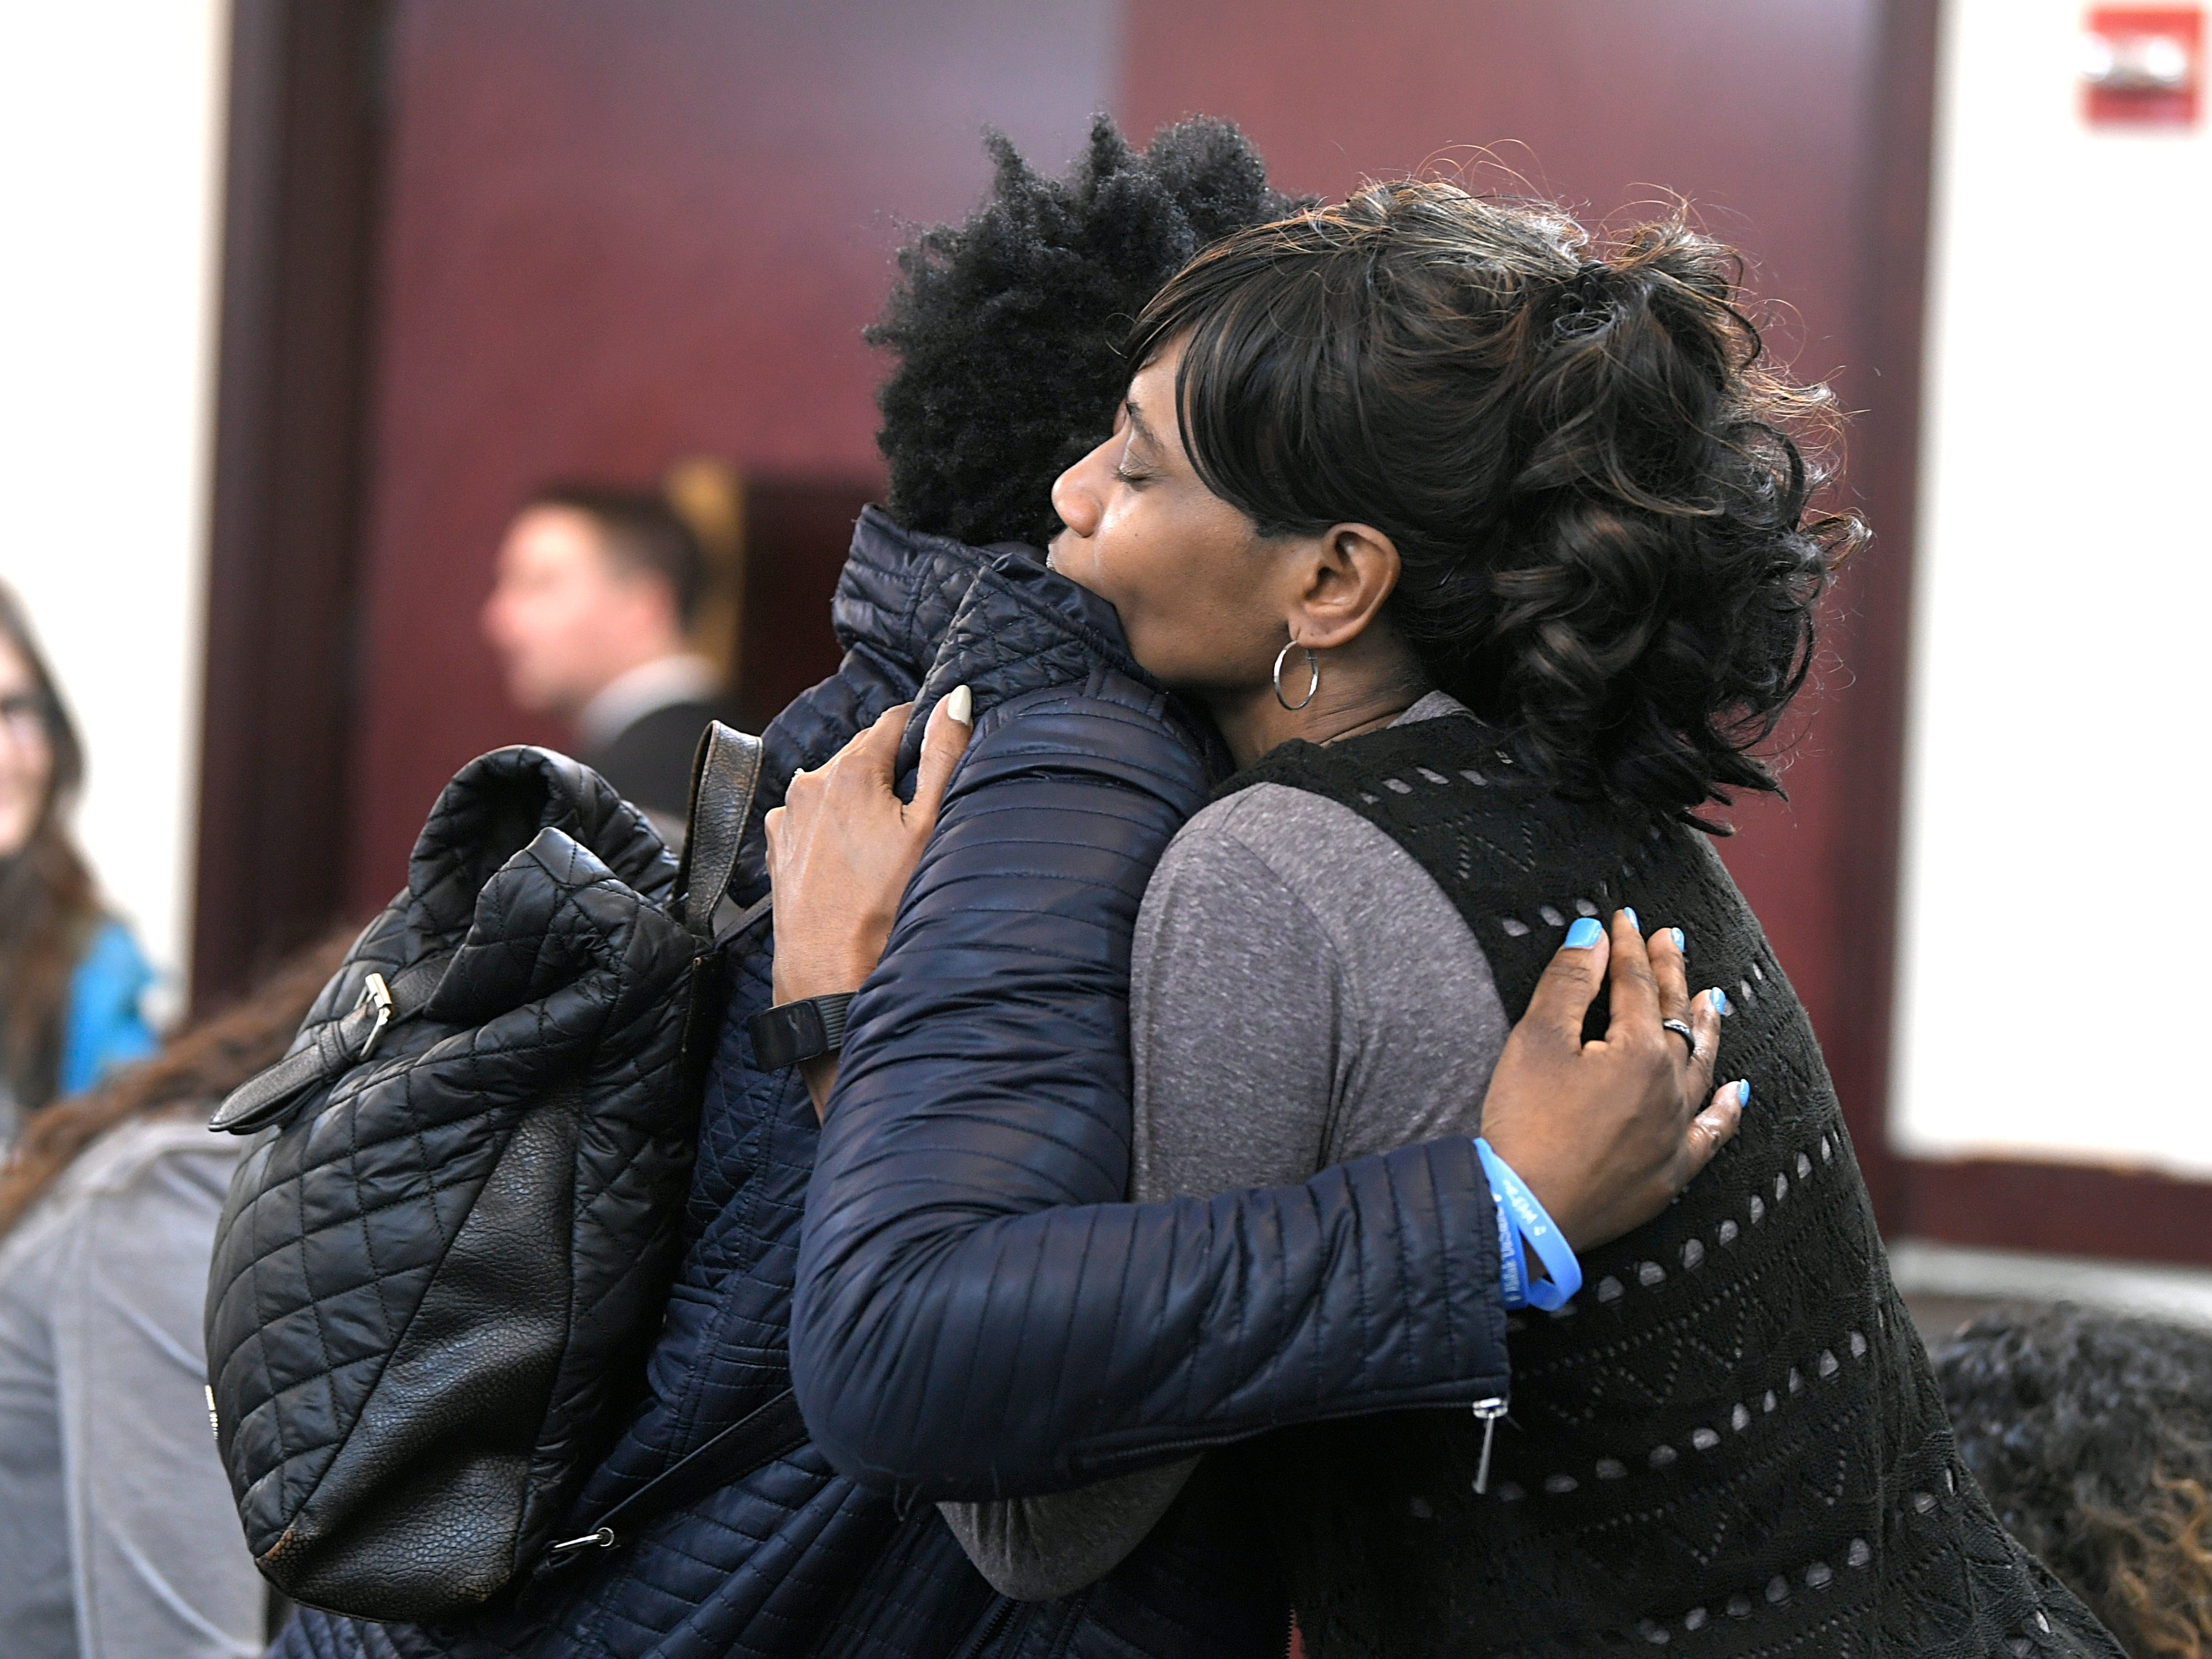 Shaundelle Brooks, mother of Akilah Dasilva, and Shirl Baker, DeEbony Groves' mom,  hug before a hearing on Waffle House shooting suspect Travis Reinking in Judge Mark Fishburn's courtroom in Nashville on Wednesday, Feb. 13, 2019.